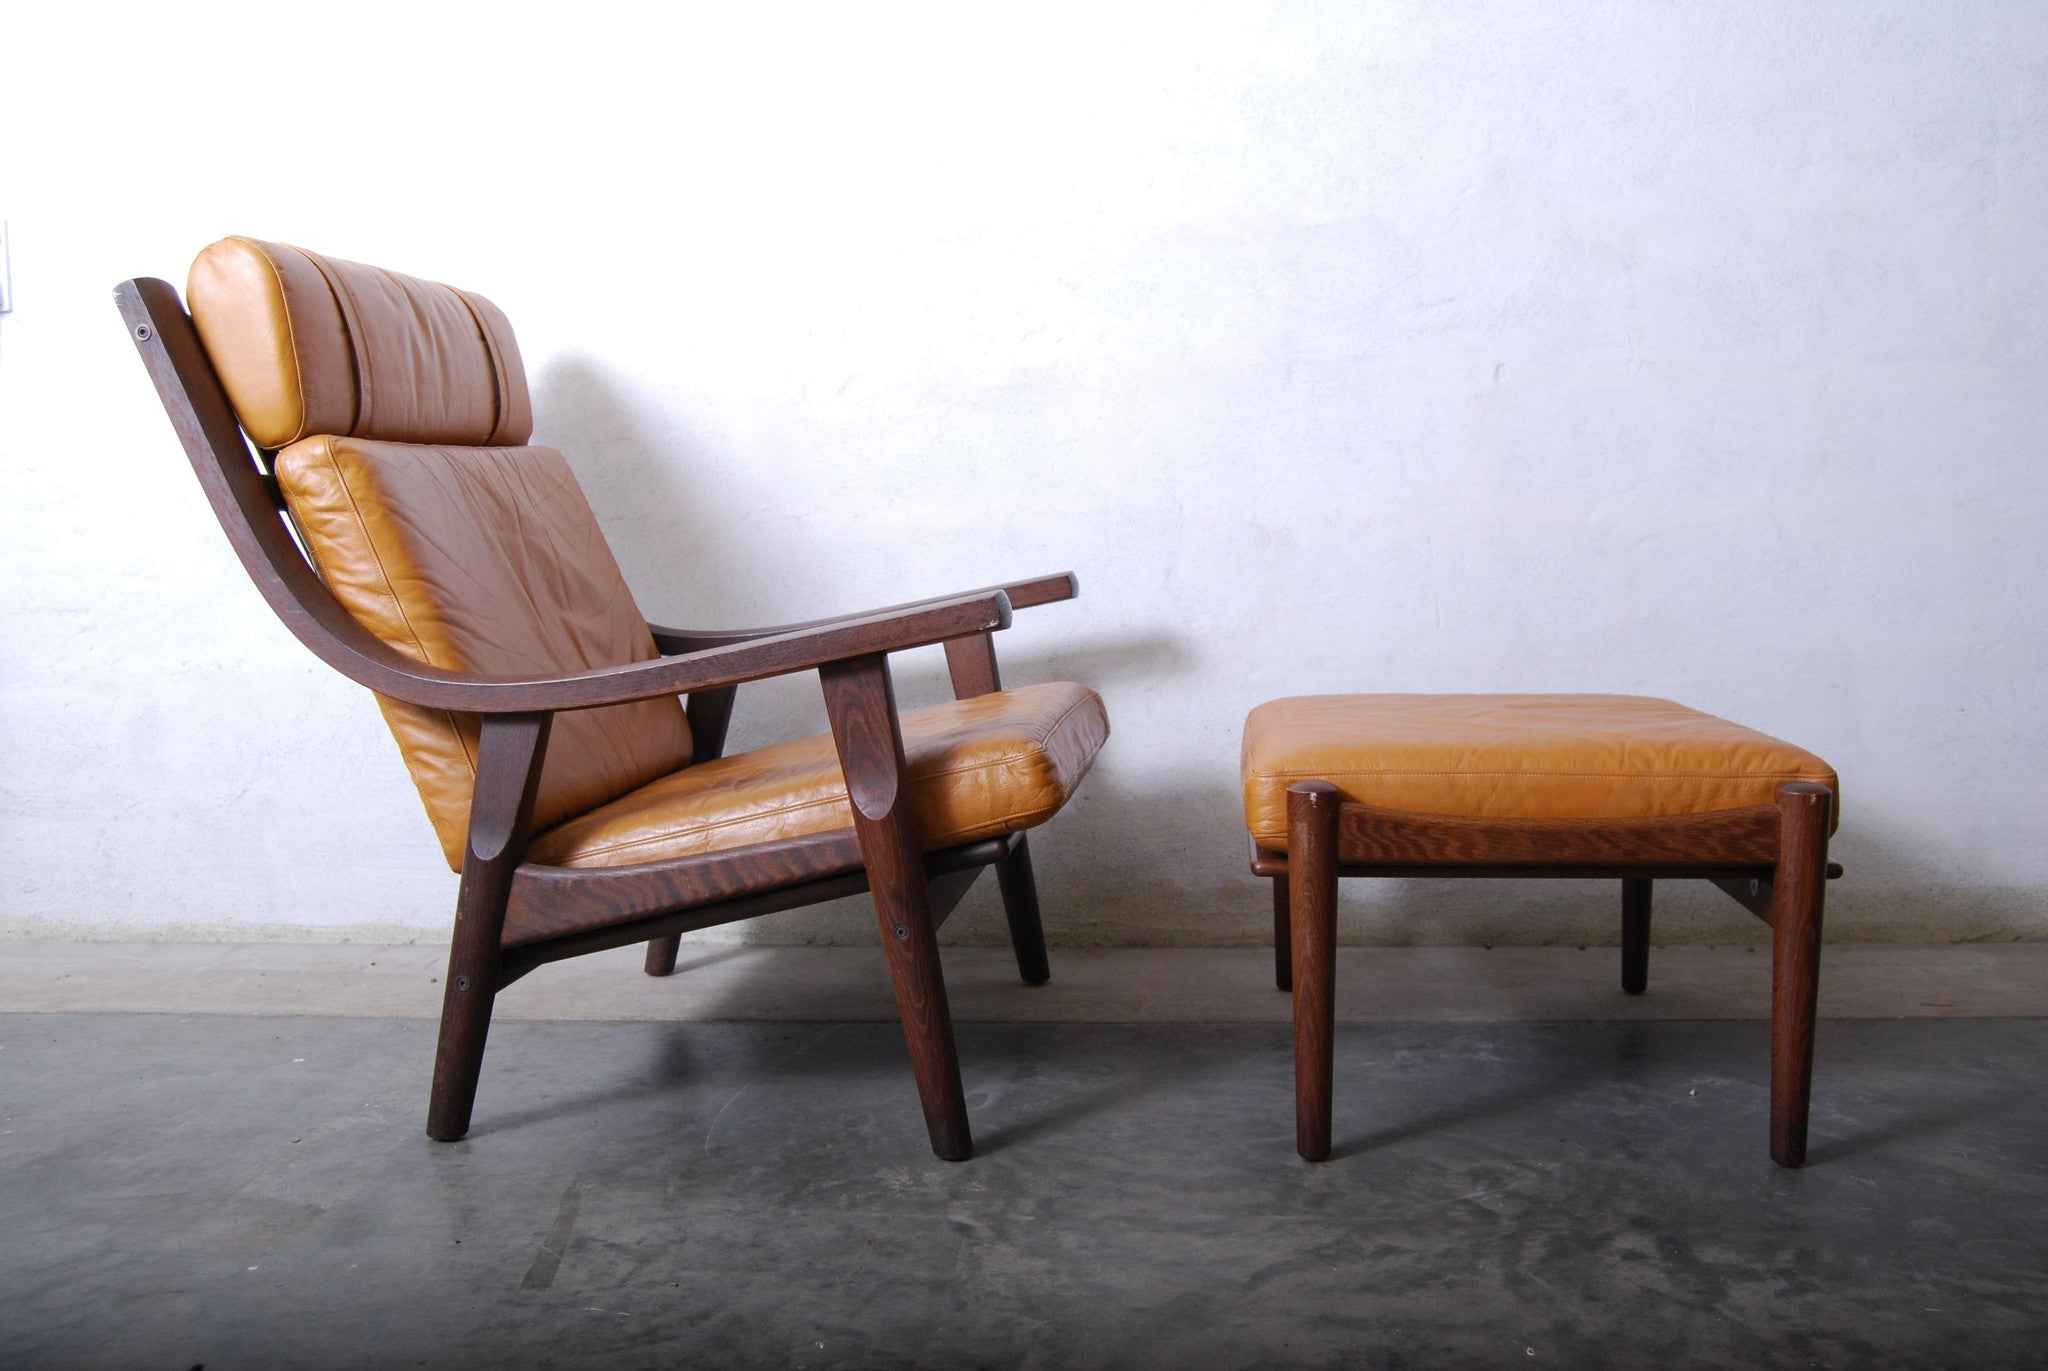 GE-350 lounge chair and footstool by Wegner